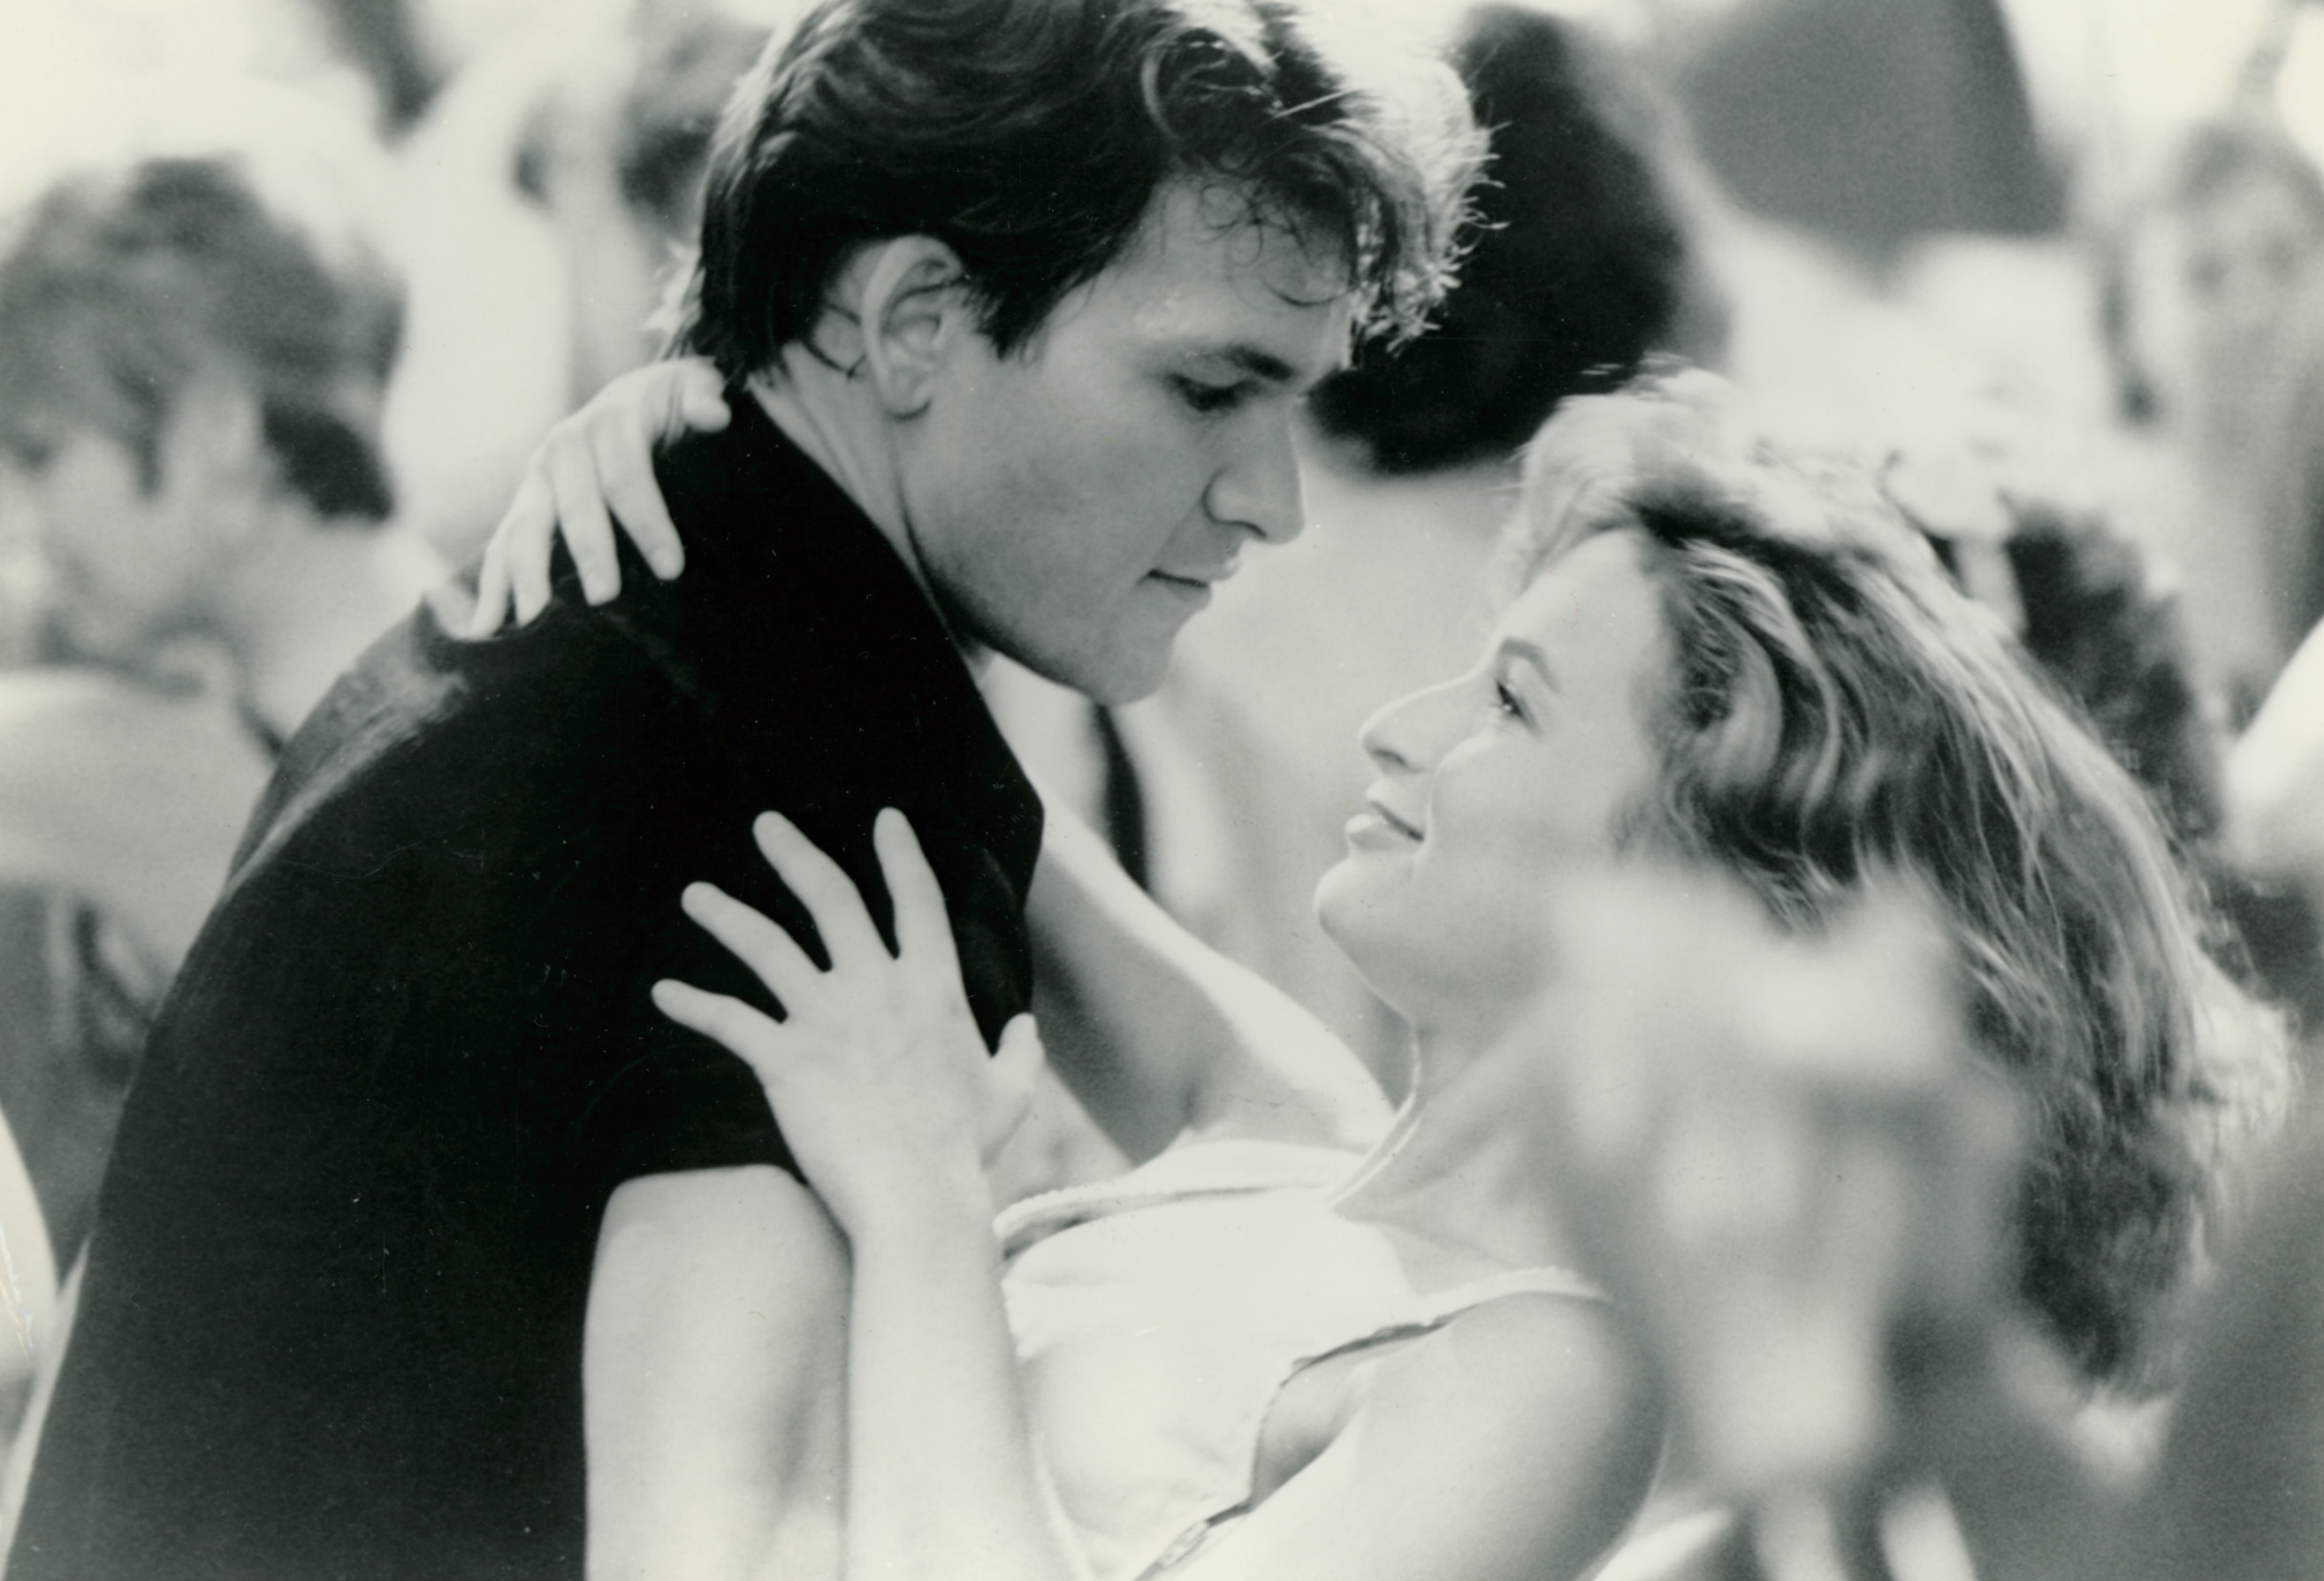 Dirty Dancing Movie Wallpapers 101 images in Collection Page 3 2629x1788